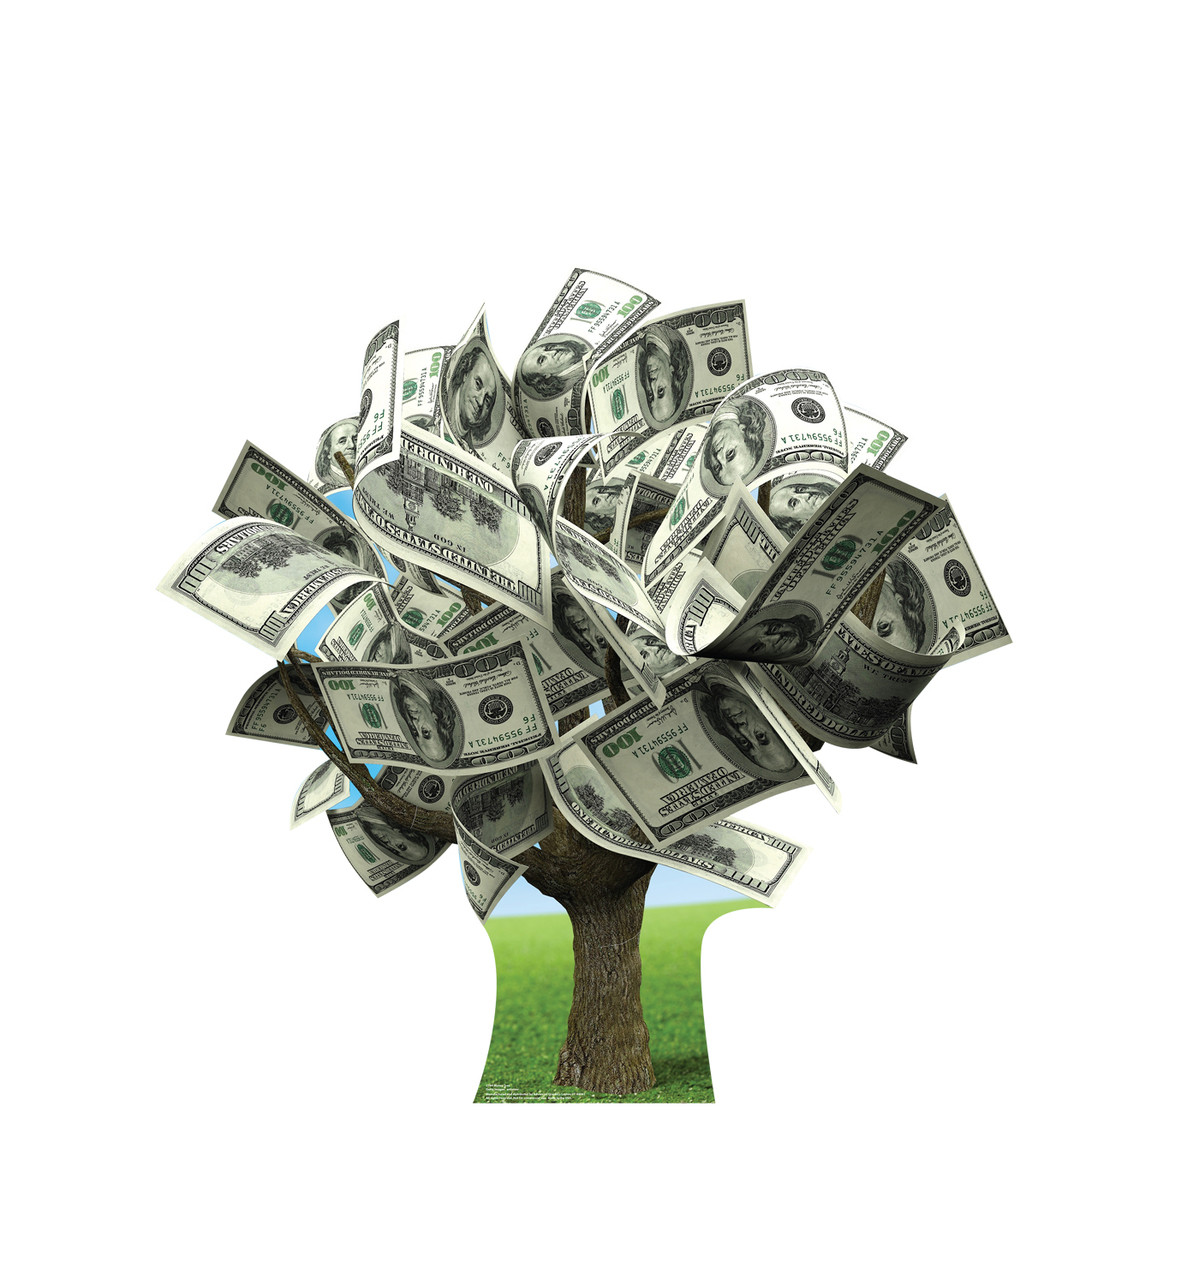 Life-size cardboard standee of a Money Tree.